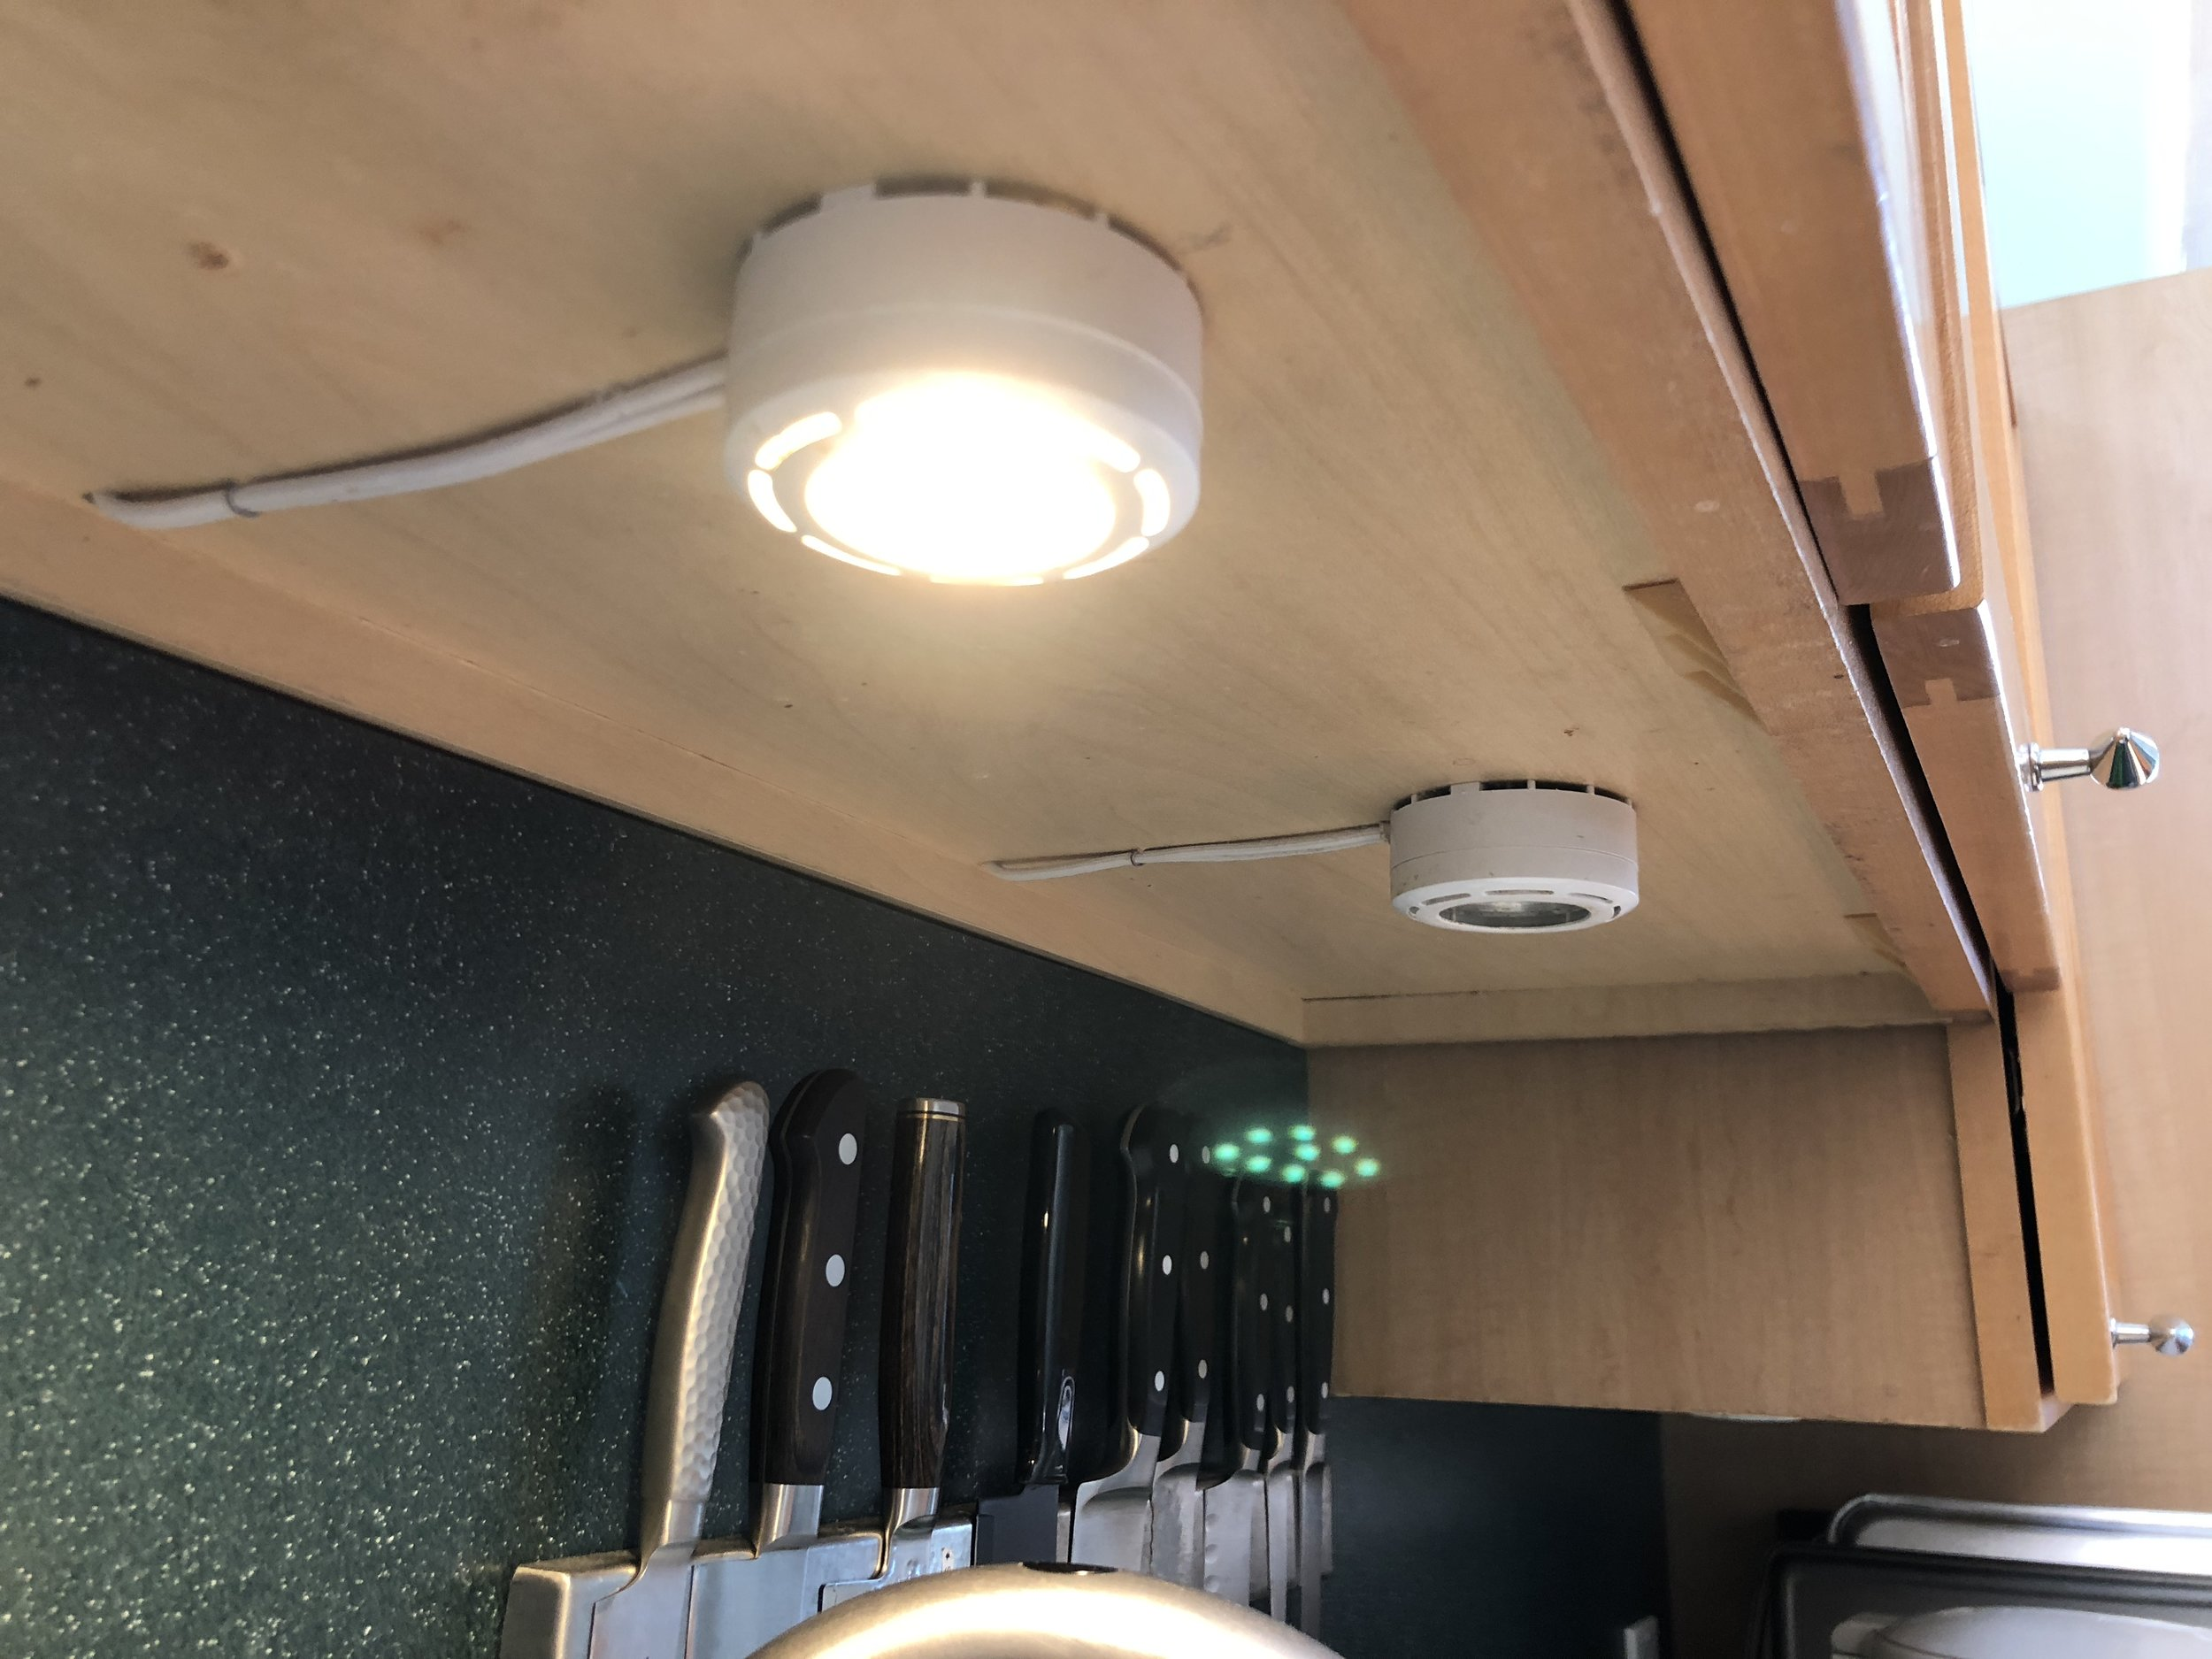 Kakanuo G8 LED bulb, installed and on. Check out that flare pattern!